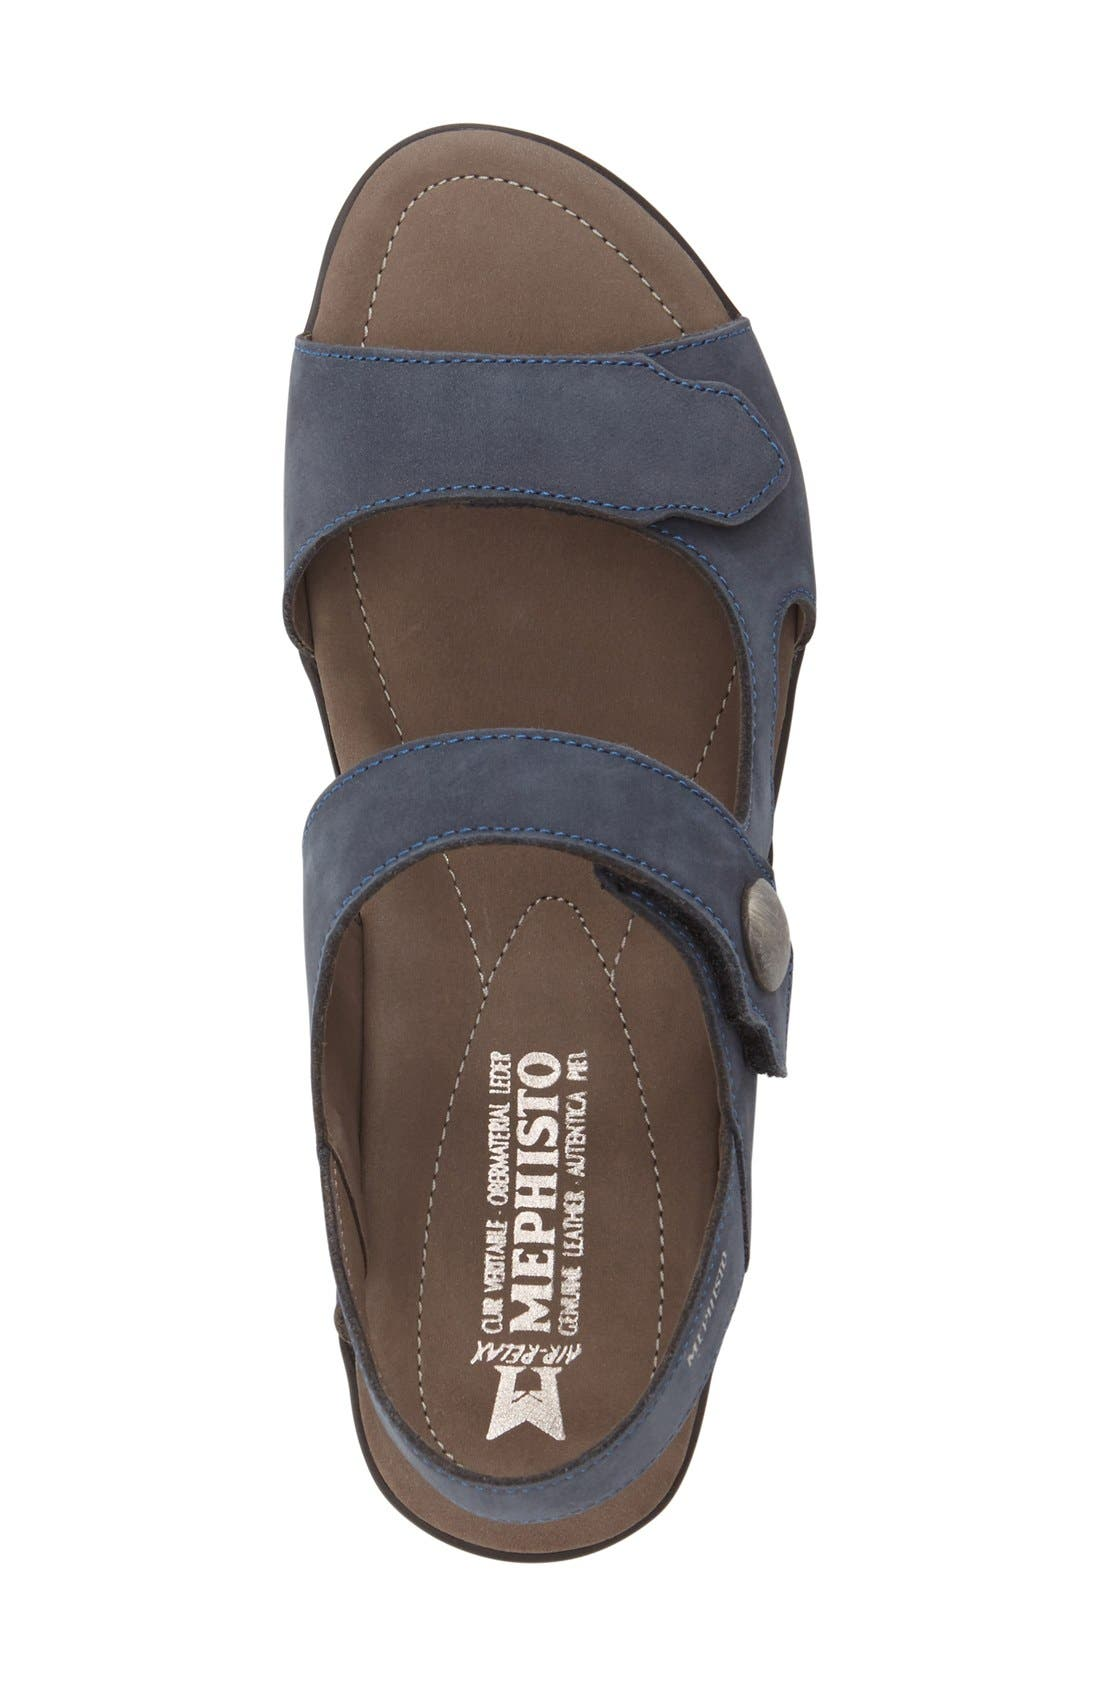 'Prudy' Leather Sandal,                             Alternate thumbnail 3, color,                             Navy Nubuck Leather